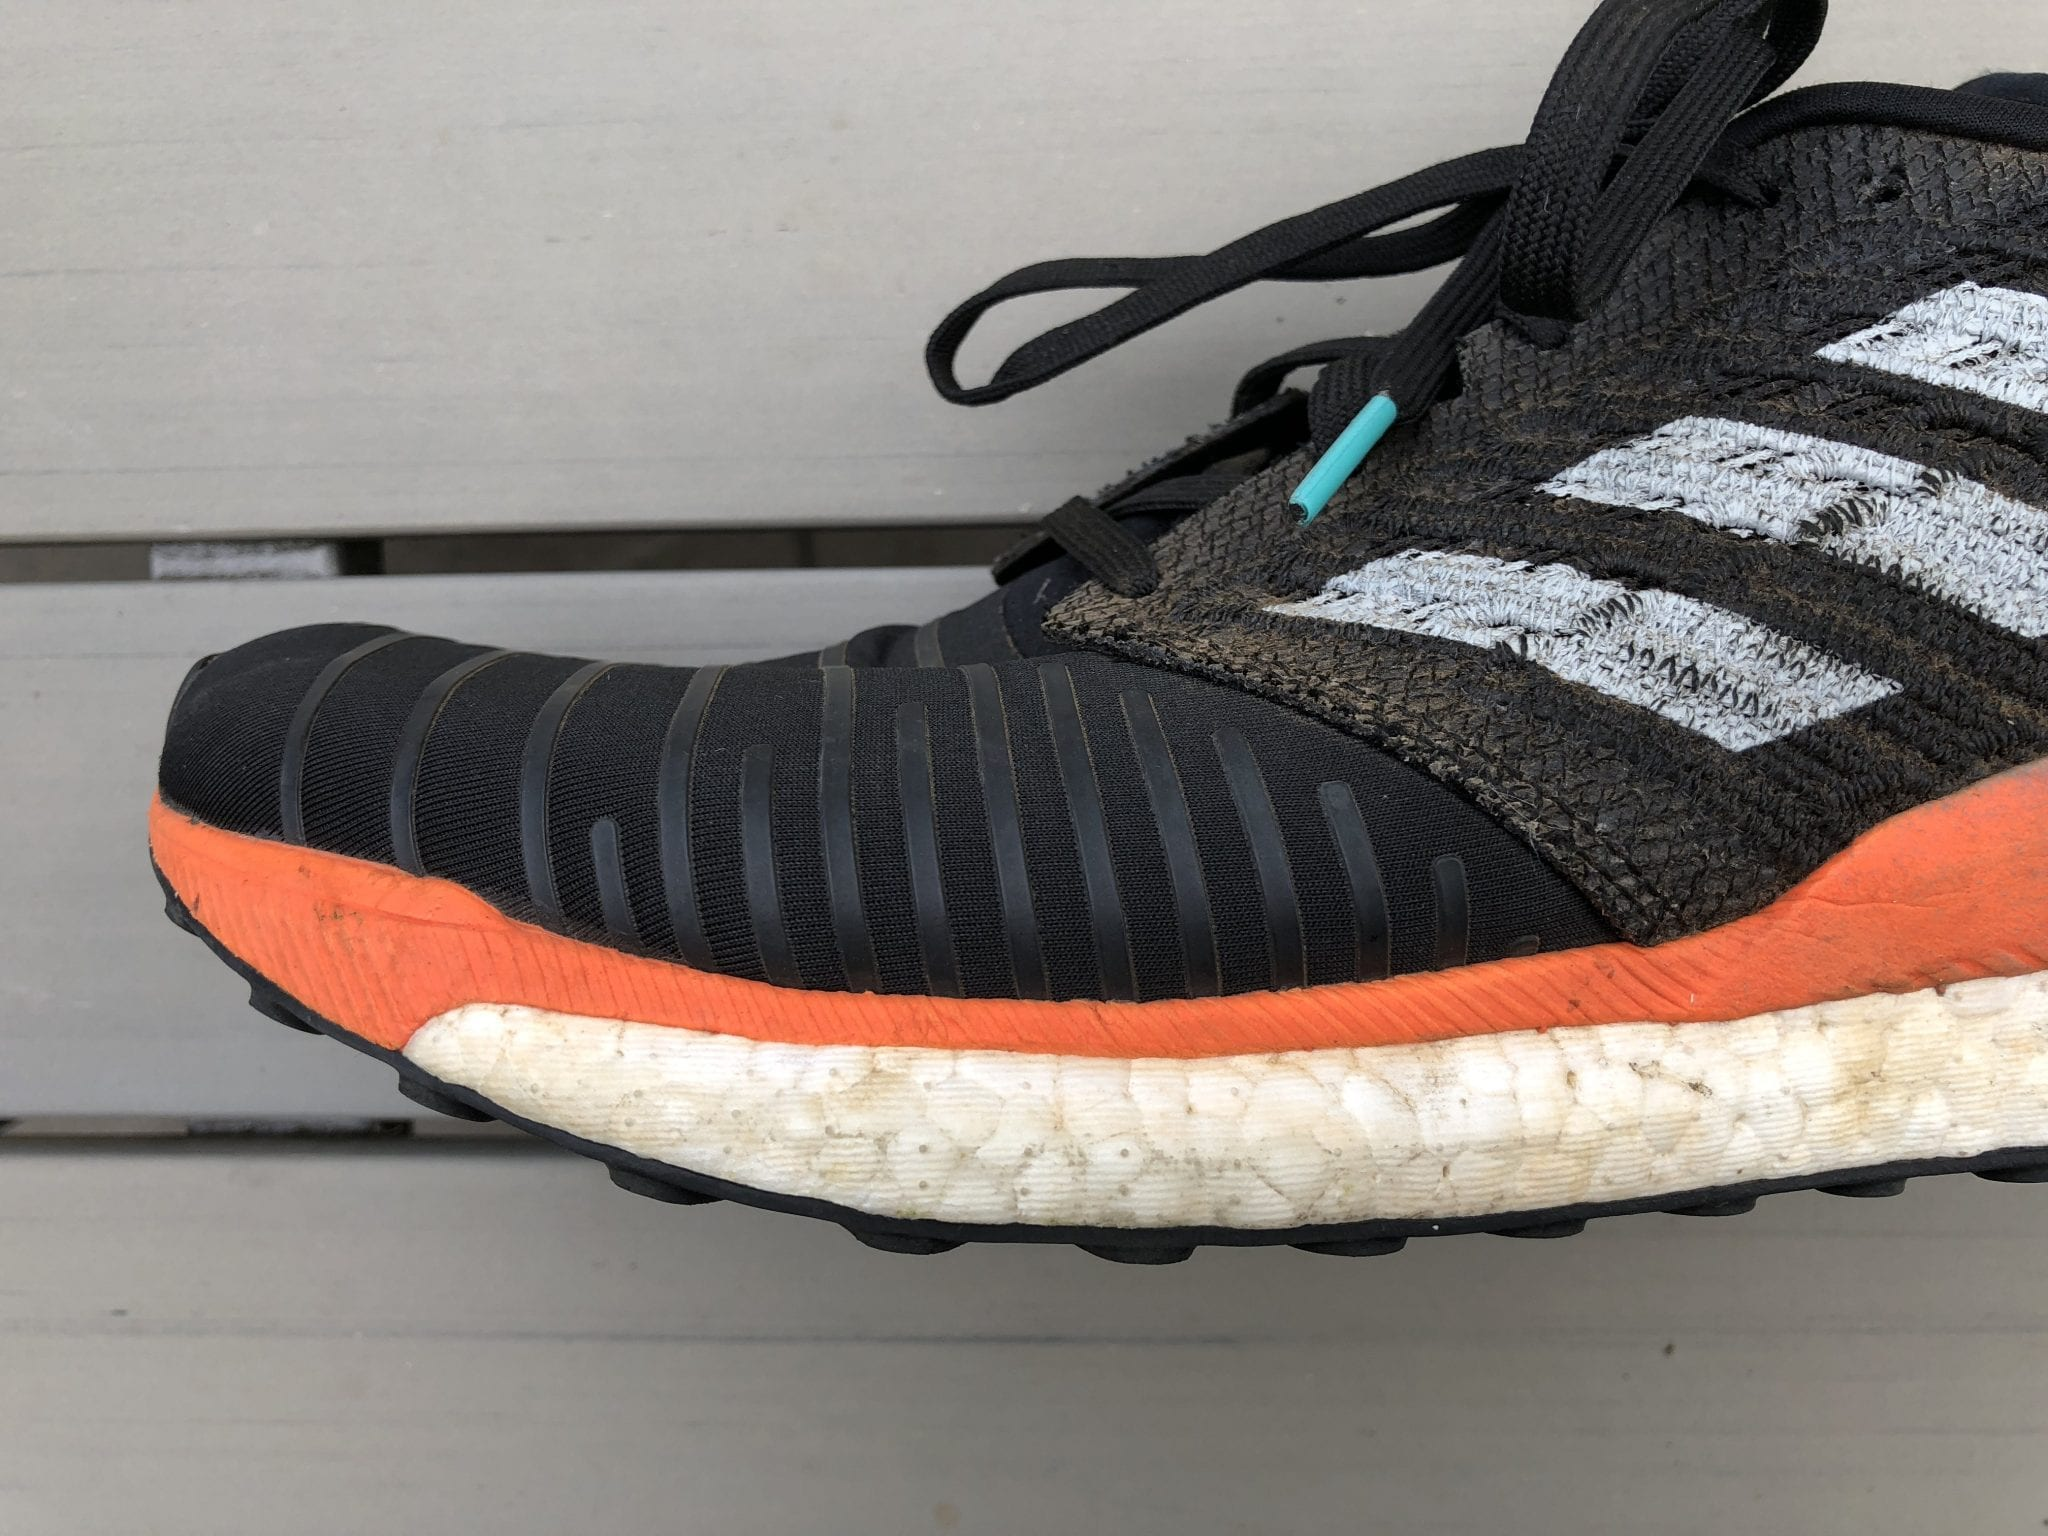 c4c6eaca9bce Adidas SolarBOOST 7. Adidas SolarBOOST – Lateral ...